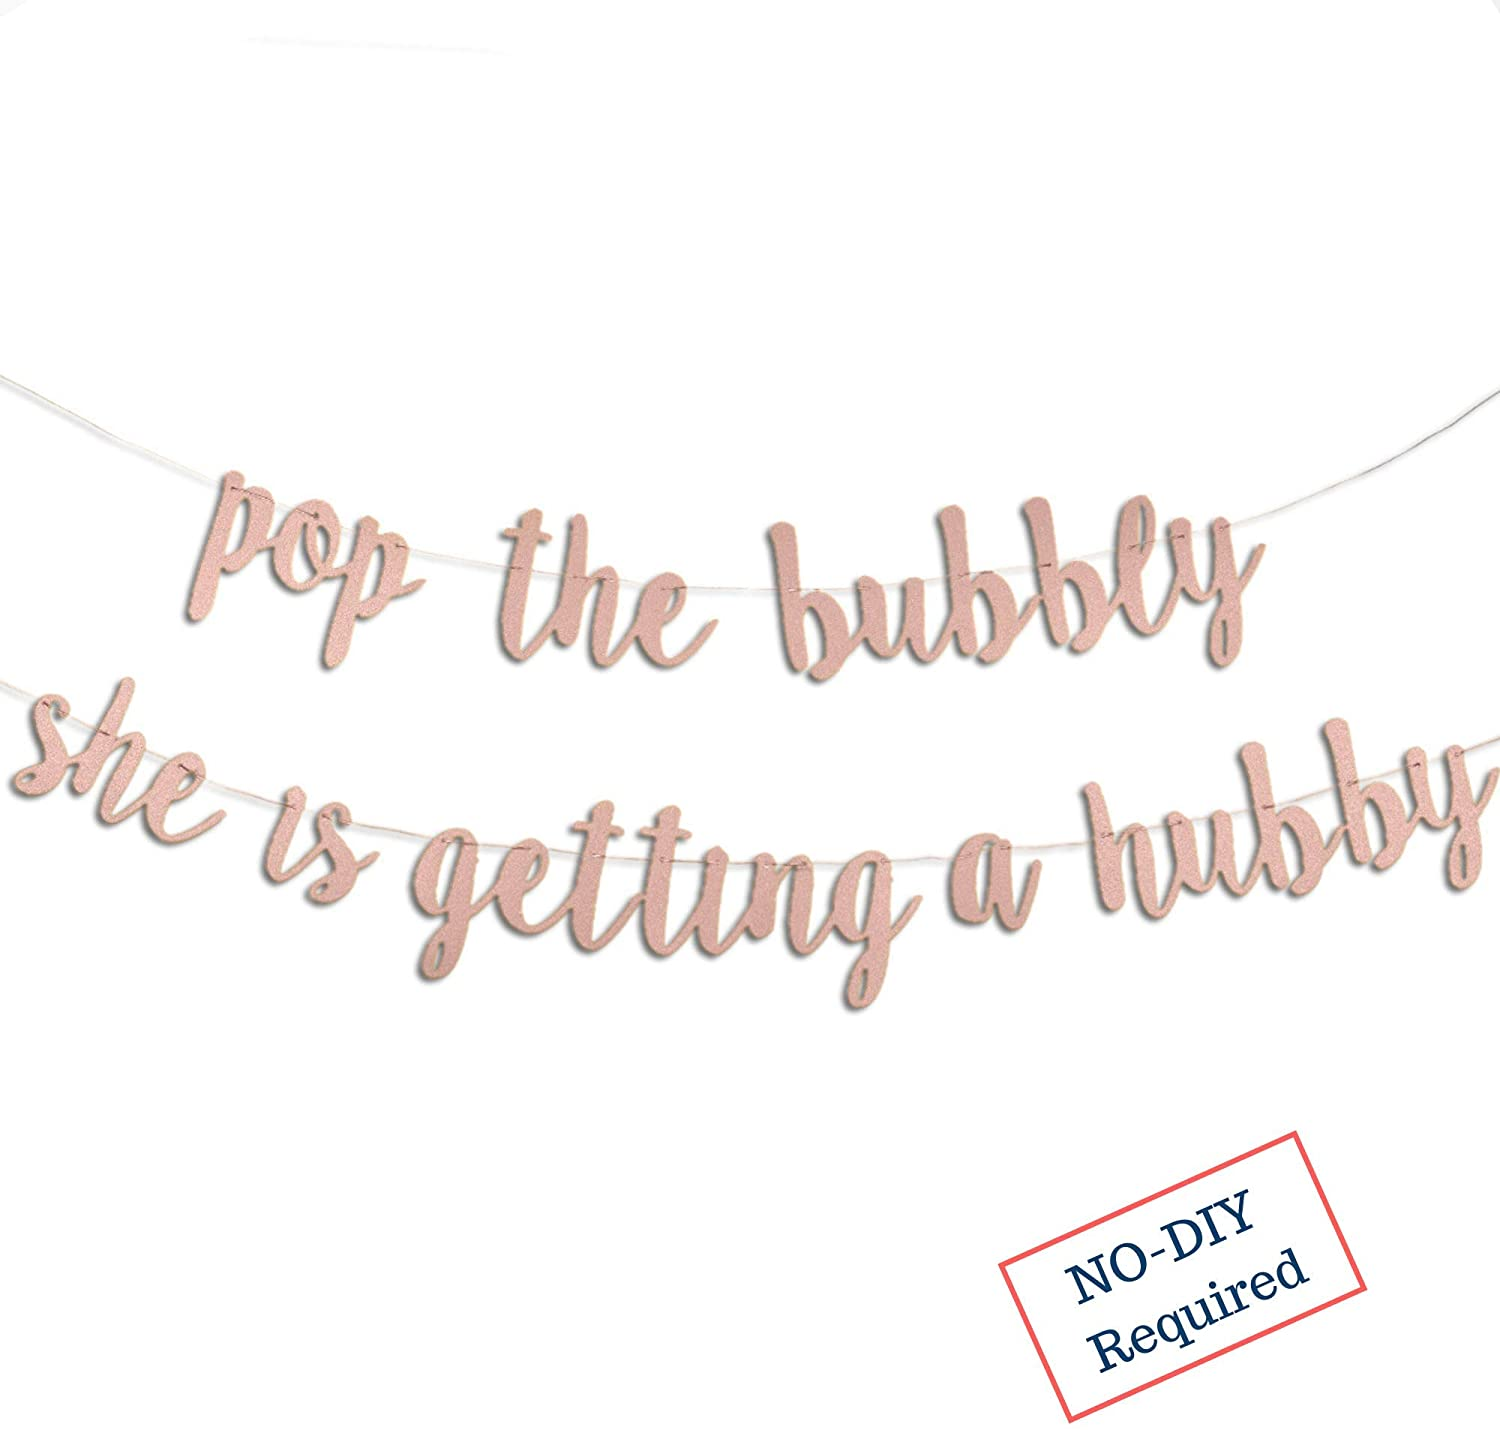 Rose Gold Bridal Shower Decorations - Bachelorette Banner - A Dazzling Sign for Your Engagement Party | Pop The Bubbly Shes Getting a Hubby | Glittering Bride to be Backdrop Decor Supplies Favors